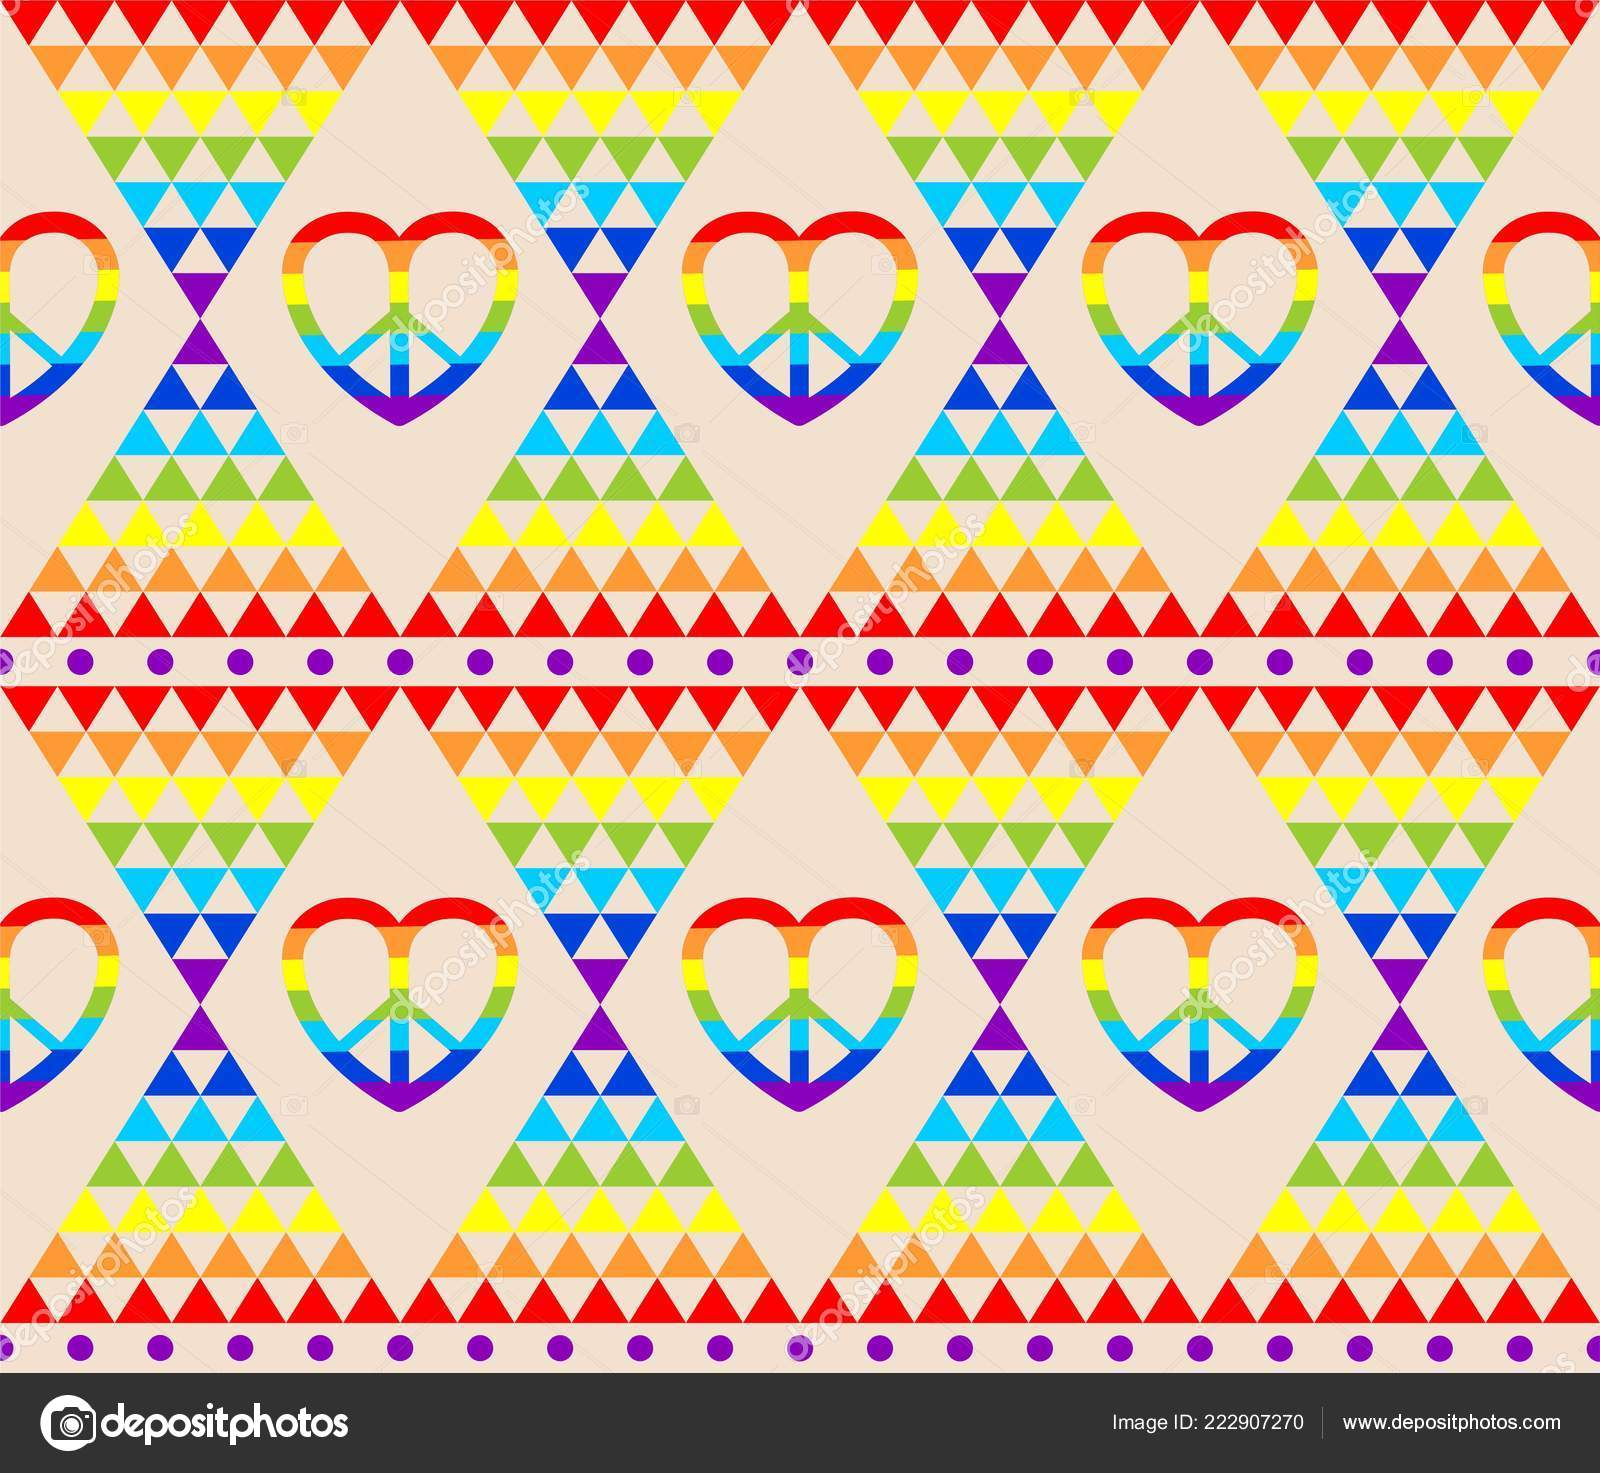 Vintage Hippie Wallpaper Rainbow Hippie Symbol Psychedelic Abstract Triangle Colorful — Stock Vector